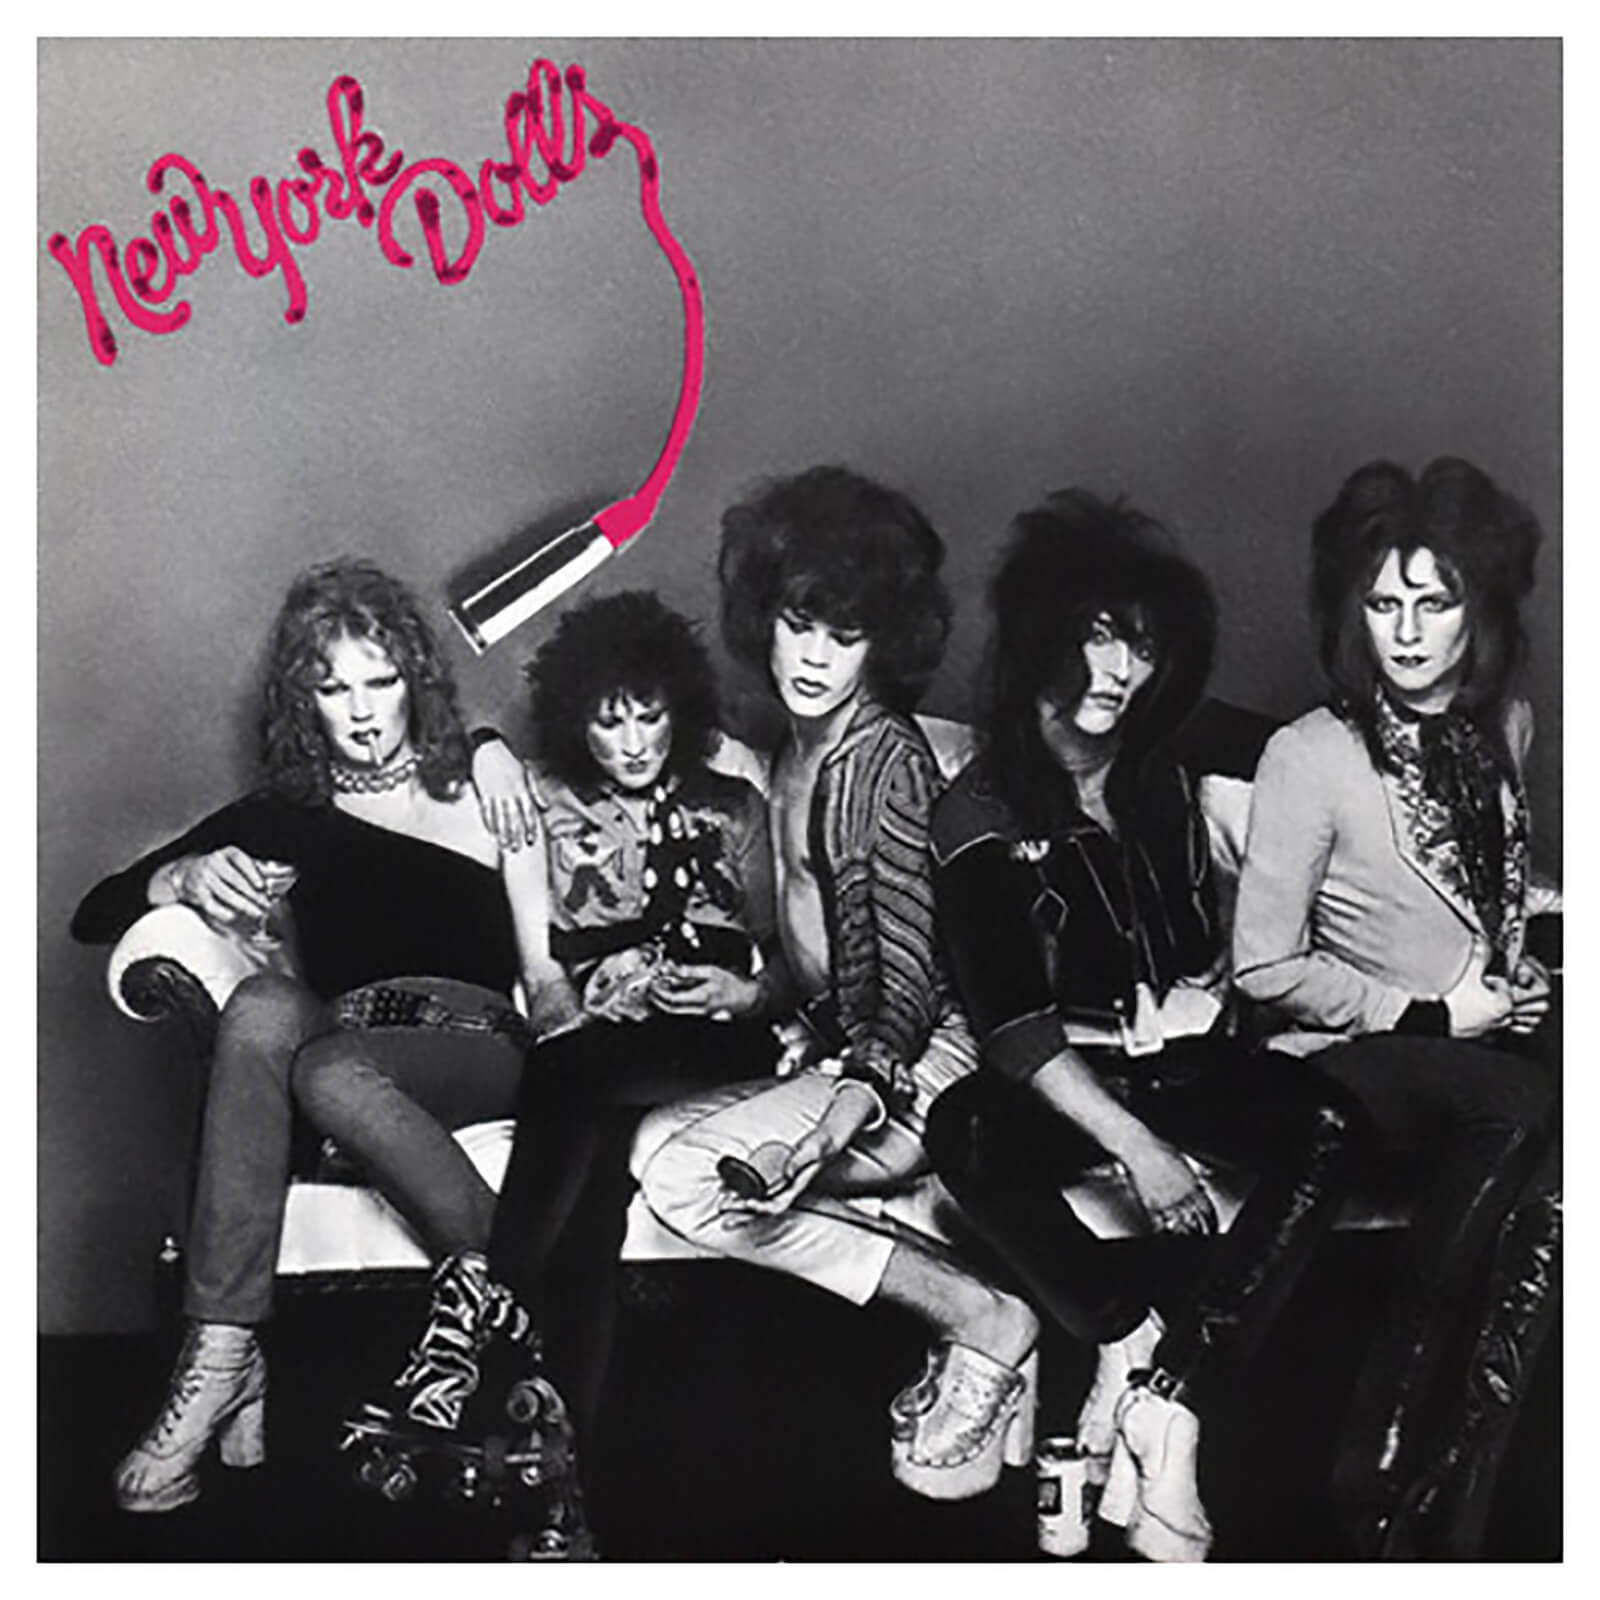 New York Dolls - Vinyl